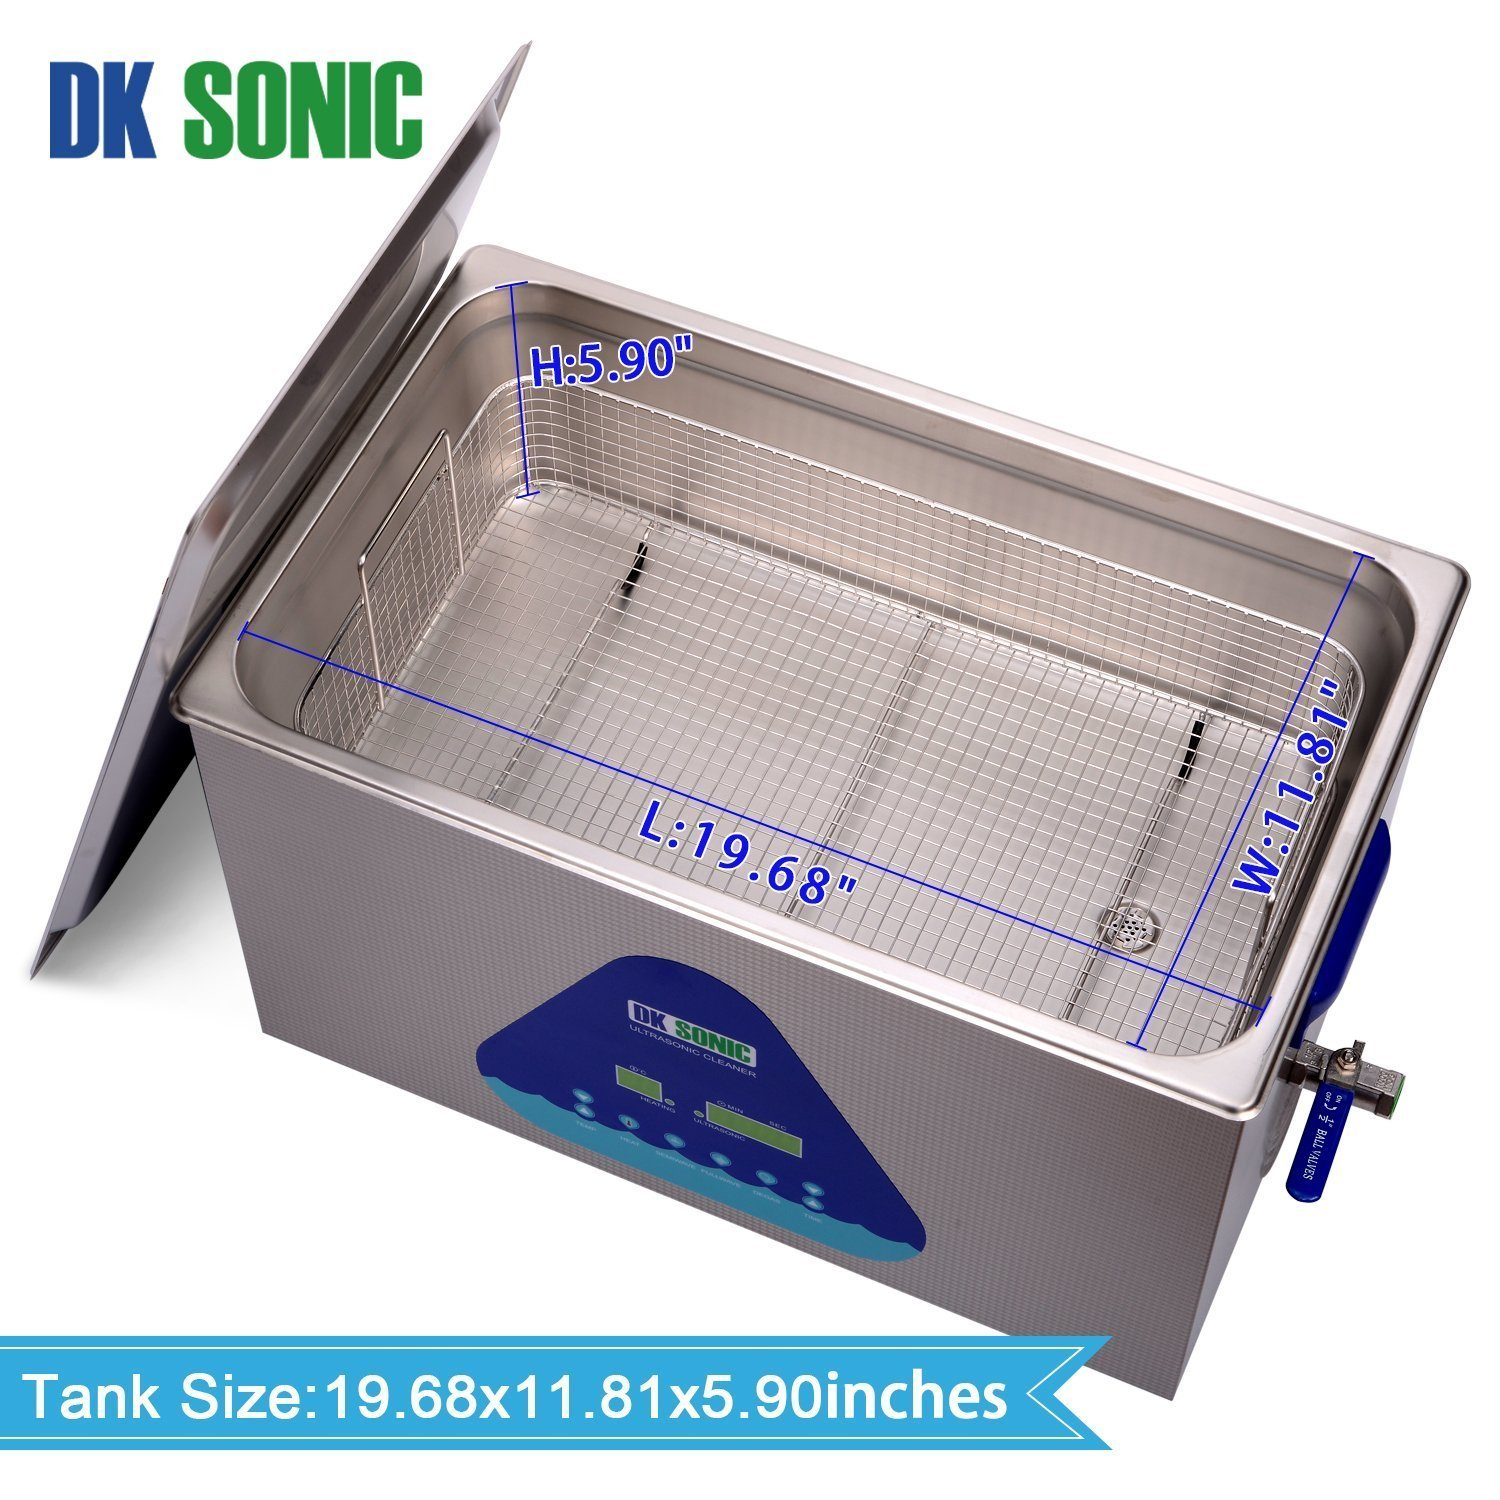 Lab Digital Ultrasonic Carburetor Cleaner Heated - DK SONIC 22L 480W Ultrasonic Gun Cleaner for Parts Jewelry Brass Eyeglass Ring Fuel Injector Glasses Record Diamond Circuit Board 28/40KHz by DK SONIC (Image #7)